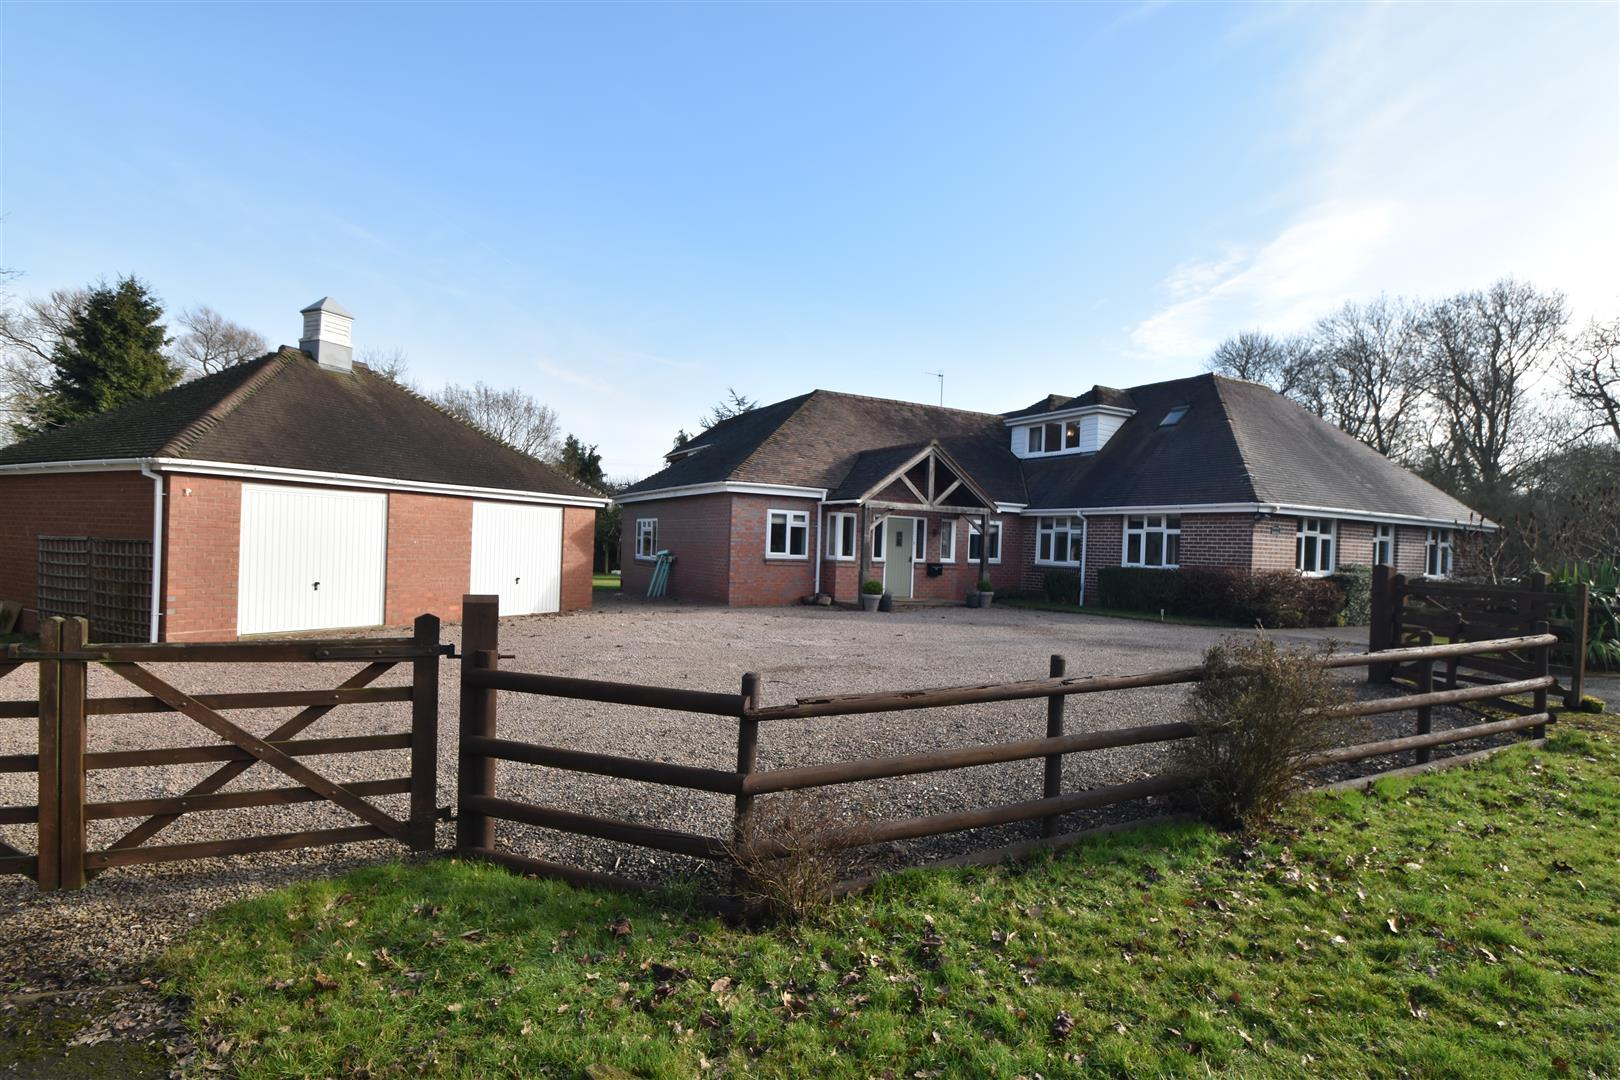 6 Bedrooms Property for sale in Hadzor, Droitwich